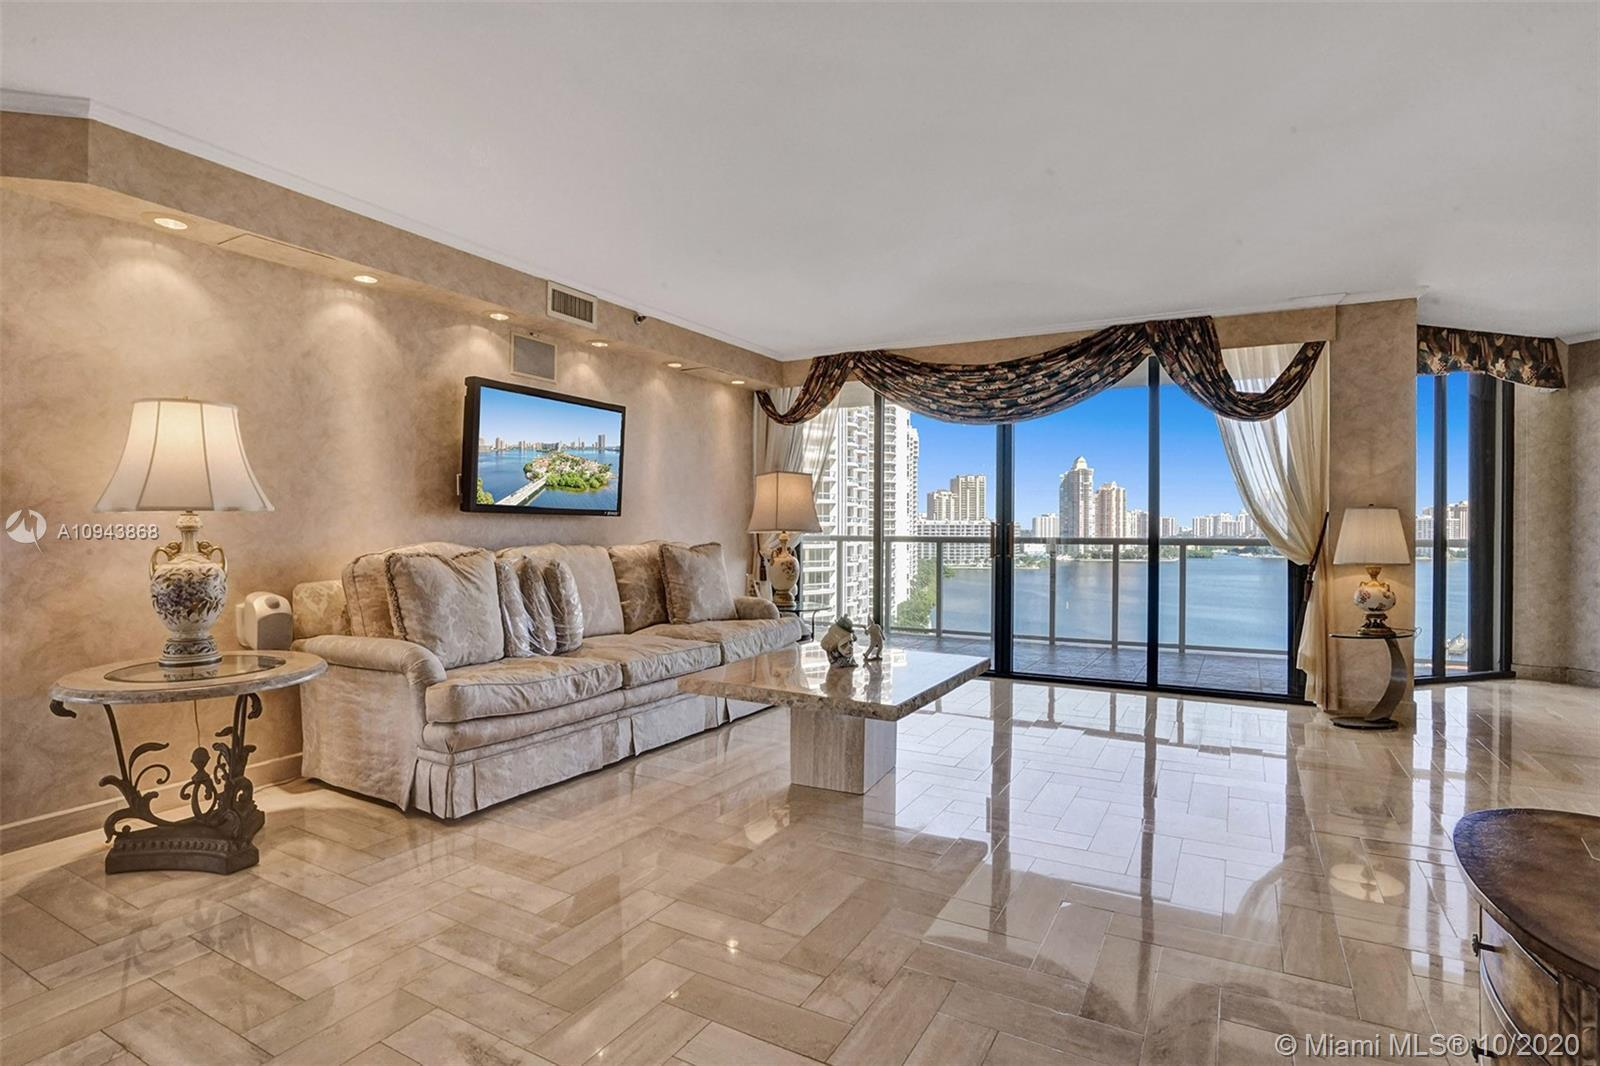 MID FLOOR BEAUTY WITH AMAZING VIEWS. 3 BEDROOMS (CURRENTLY A DEN) 3 BATHS. DEN CAN EASILY BE ENCLOSE